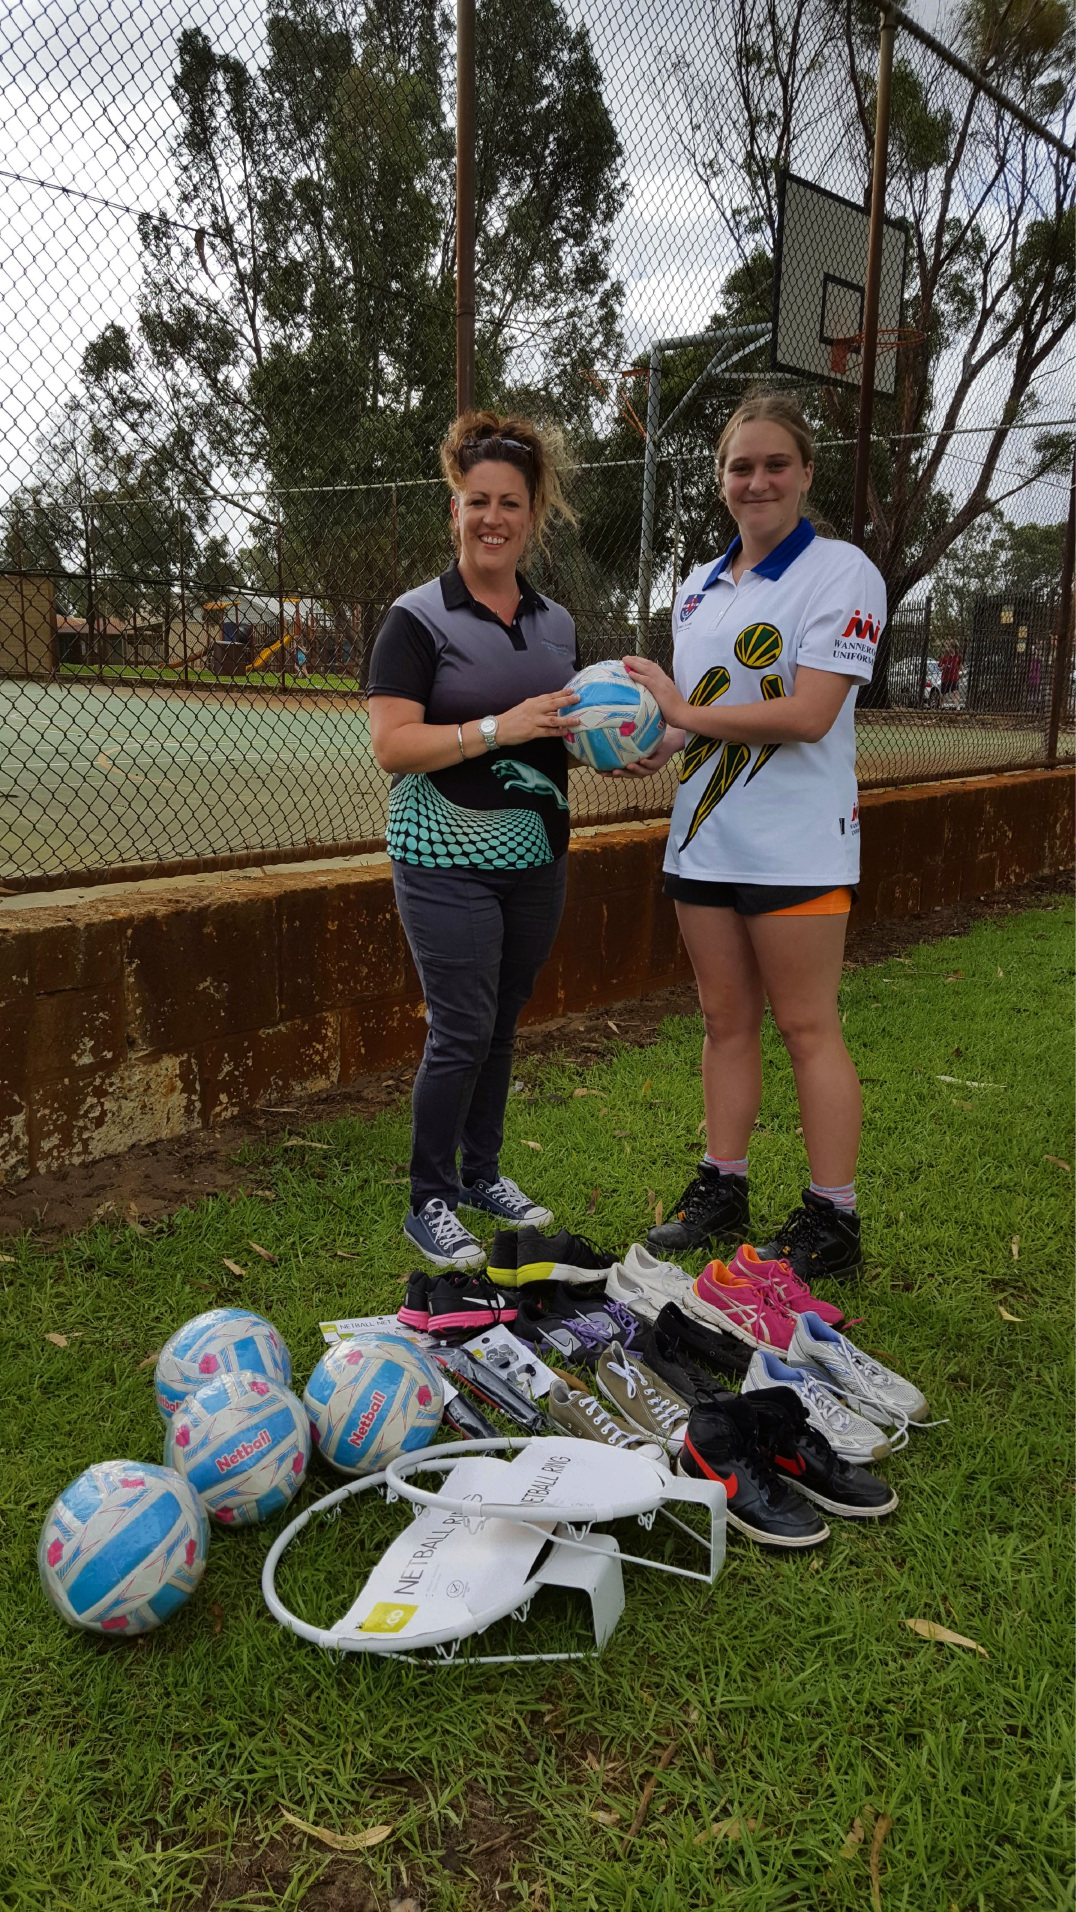 Northern Jaguars Netball Club president Olivia Grose with Kirsten Mellows.